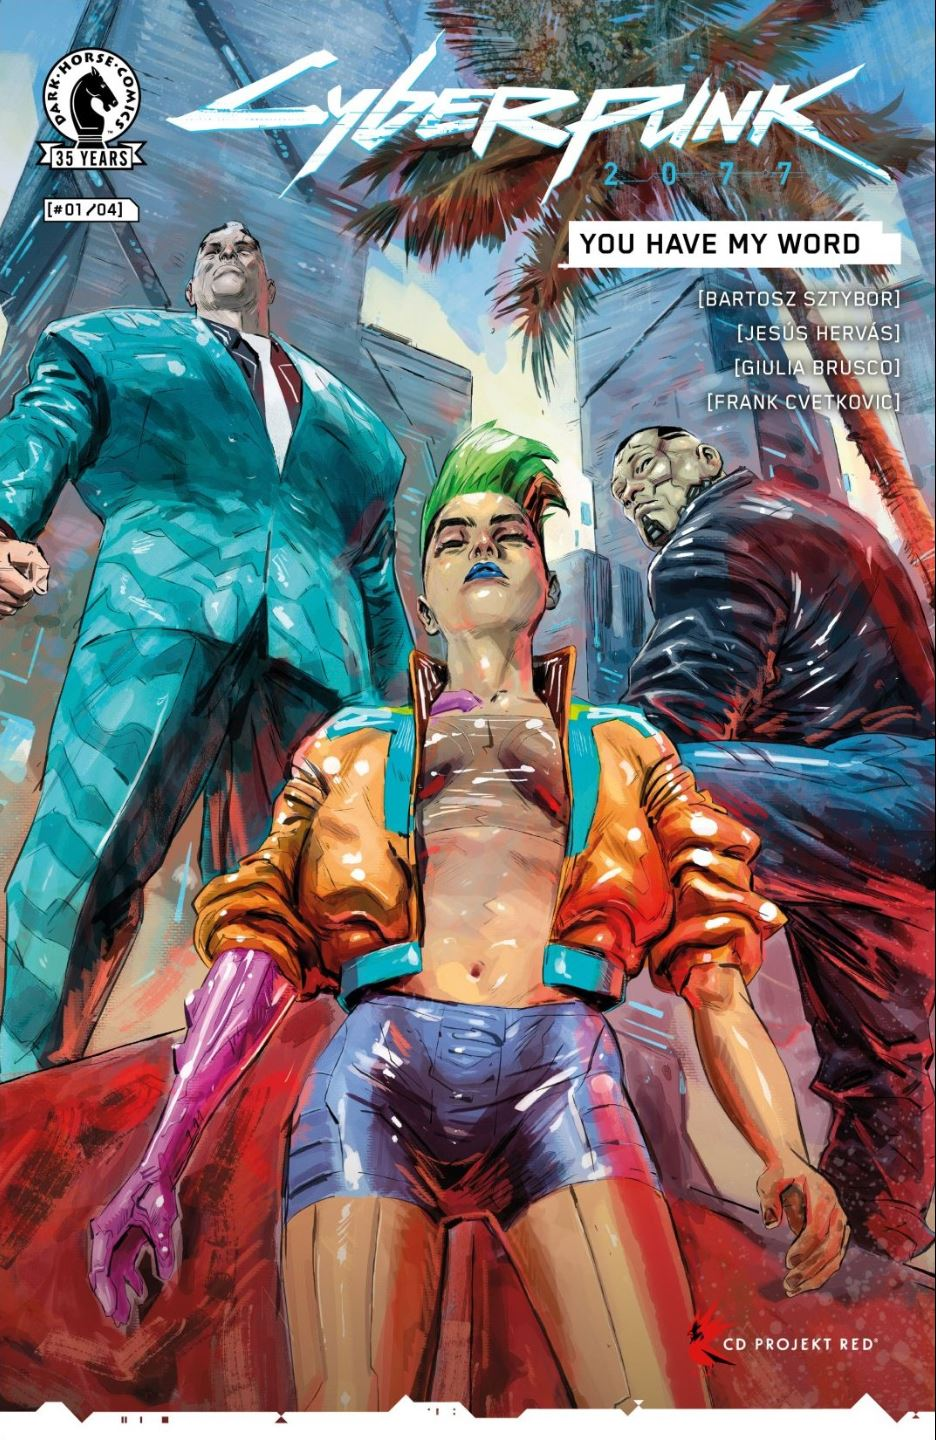 Cyberpunk 2077 YOU HAVE MY WORD #1 cover